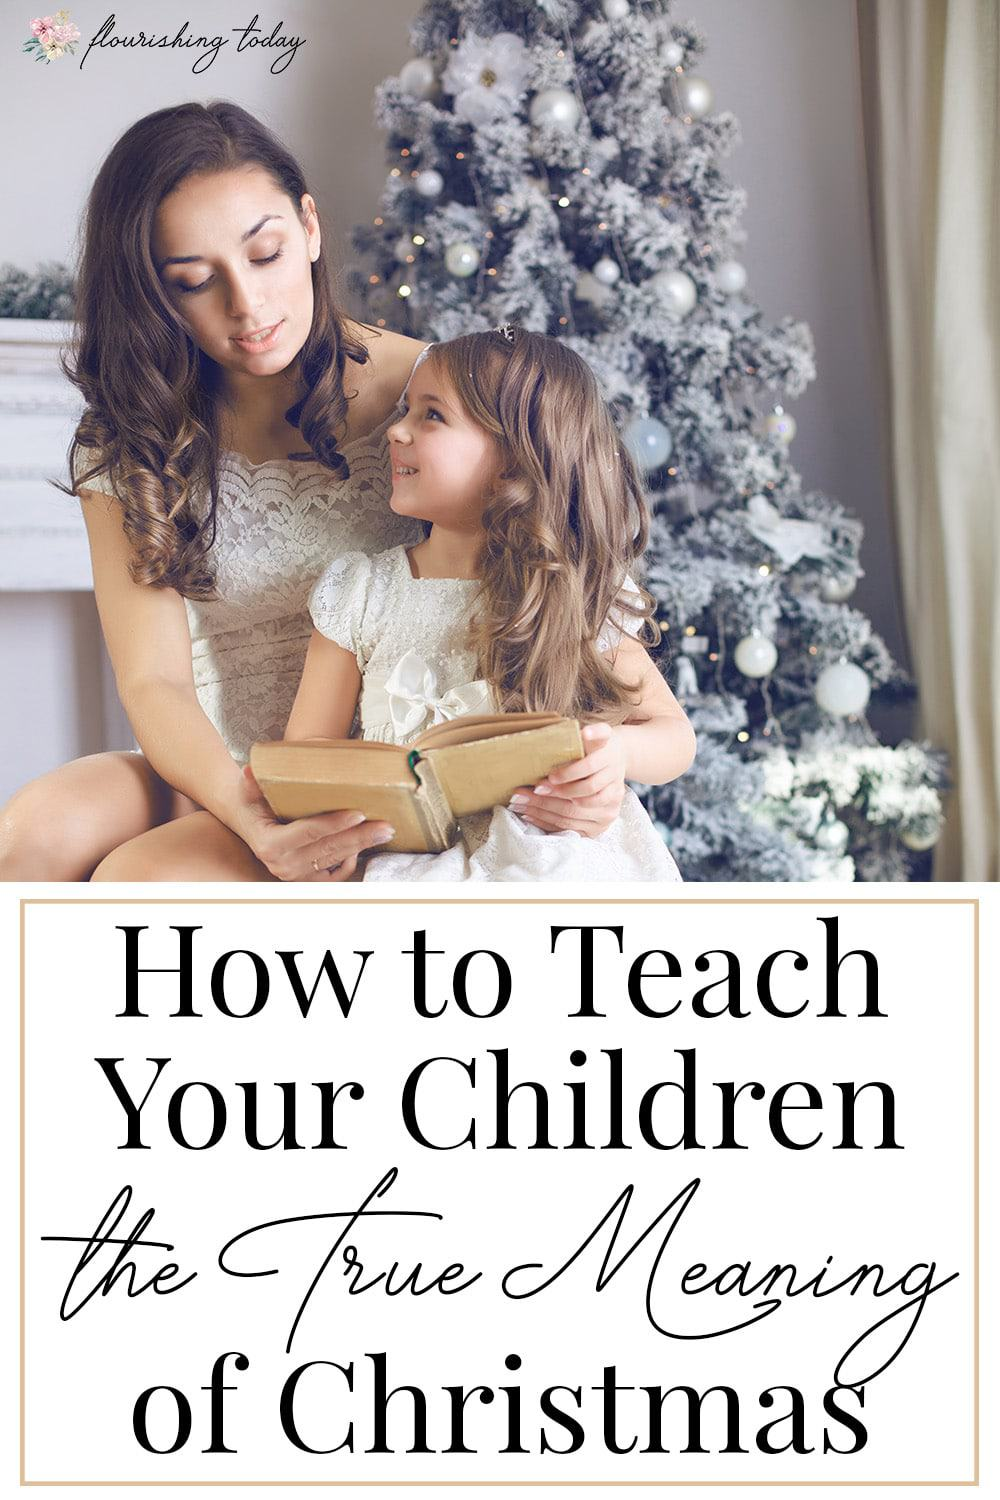 How do you teach your children about Jesus during Christmas? Here are 4 books that teach the true meaning of Christmas to share with your child. #truemeaningofChristmas #christmas #christmasbooks